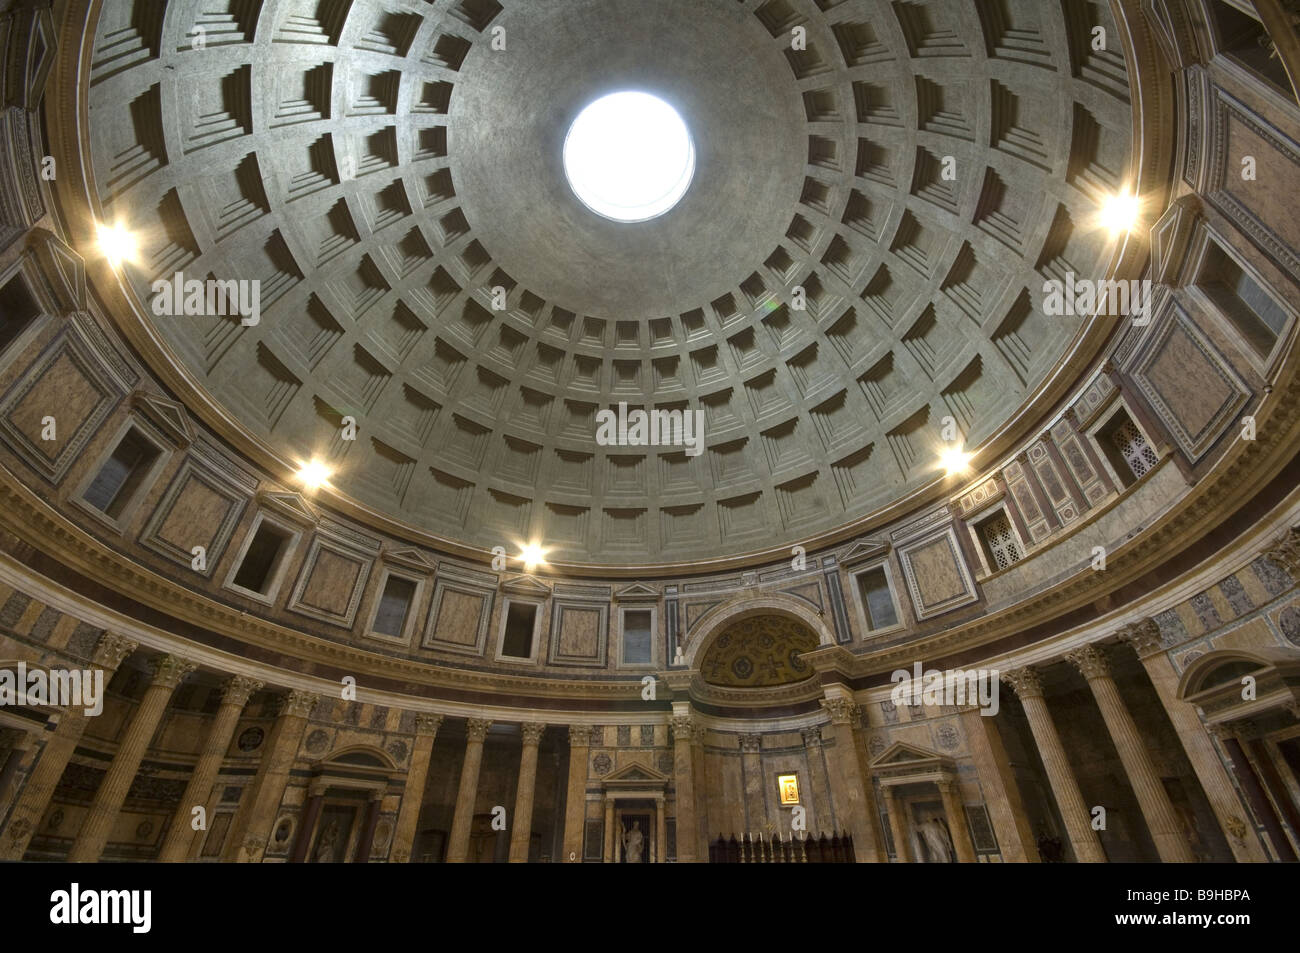 Roman Architecture Domes italy rome pantheon interior view dome architecture construction